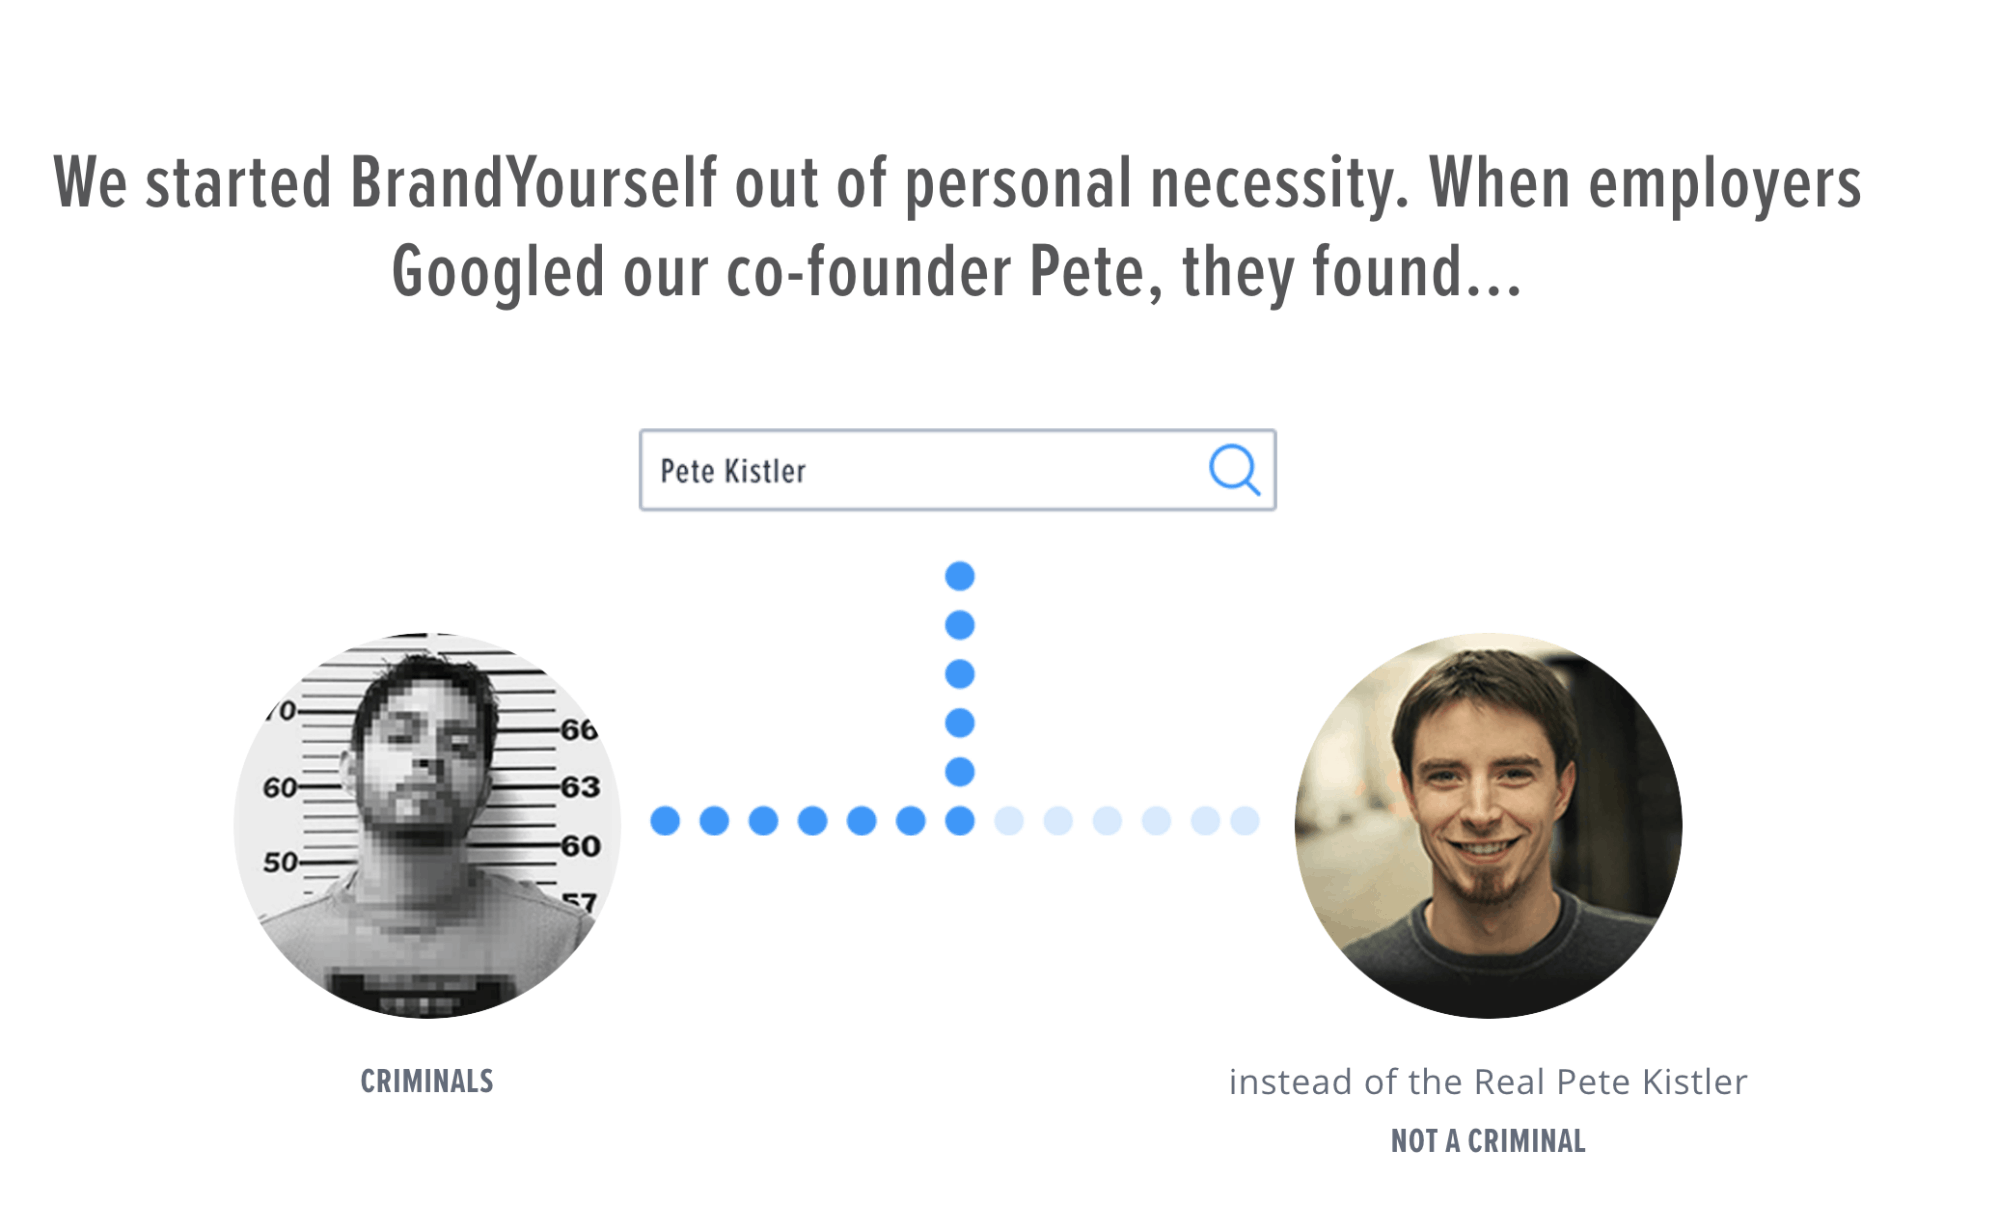 BrandYourself showing their cofounder Pete, alongside a criminal, when Pete googled himself